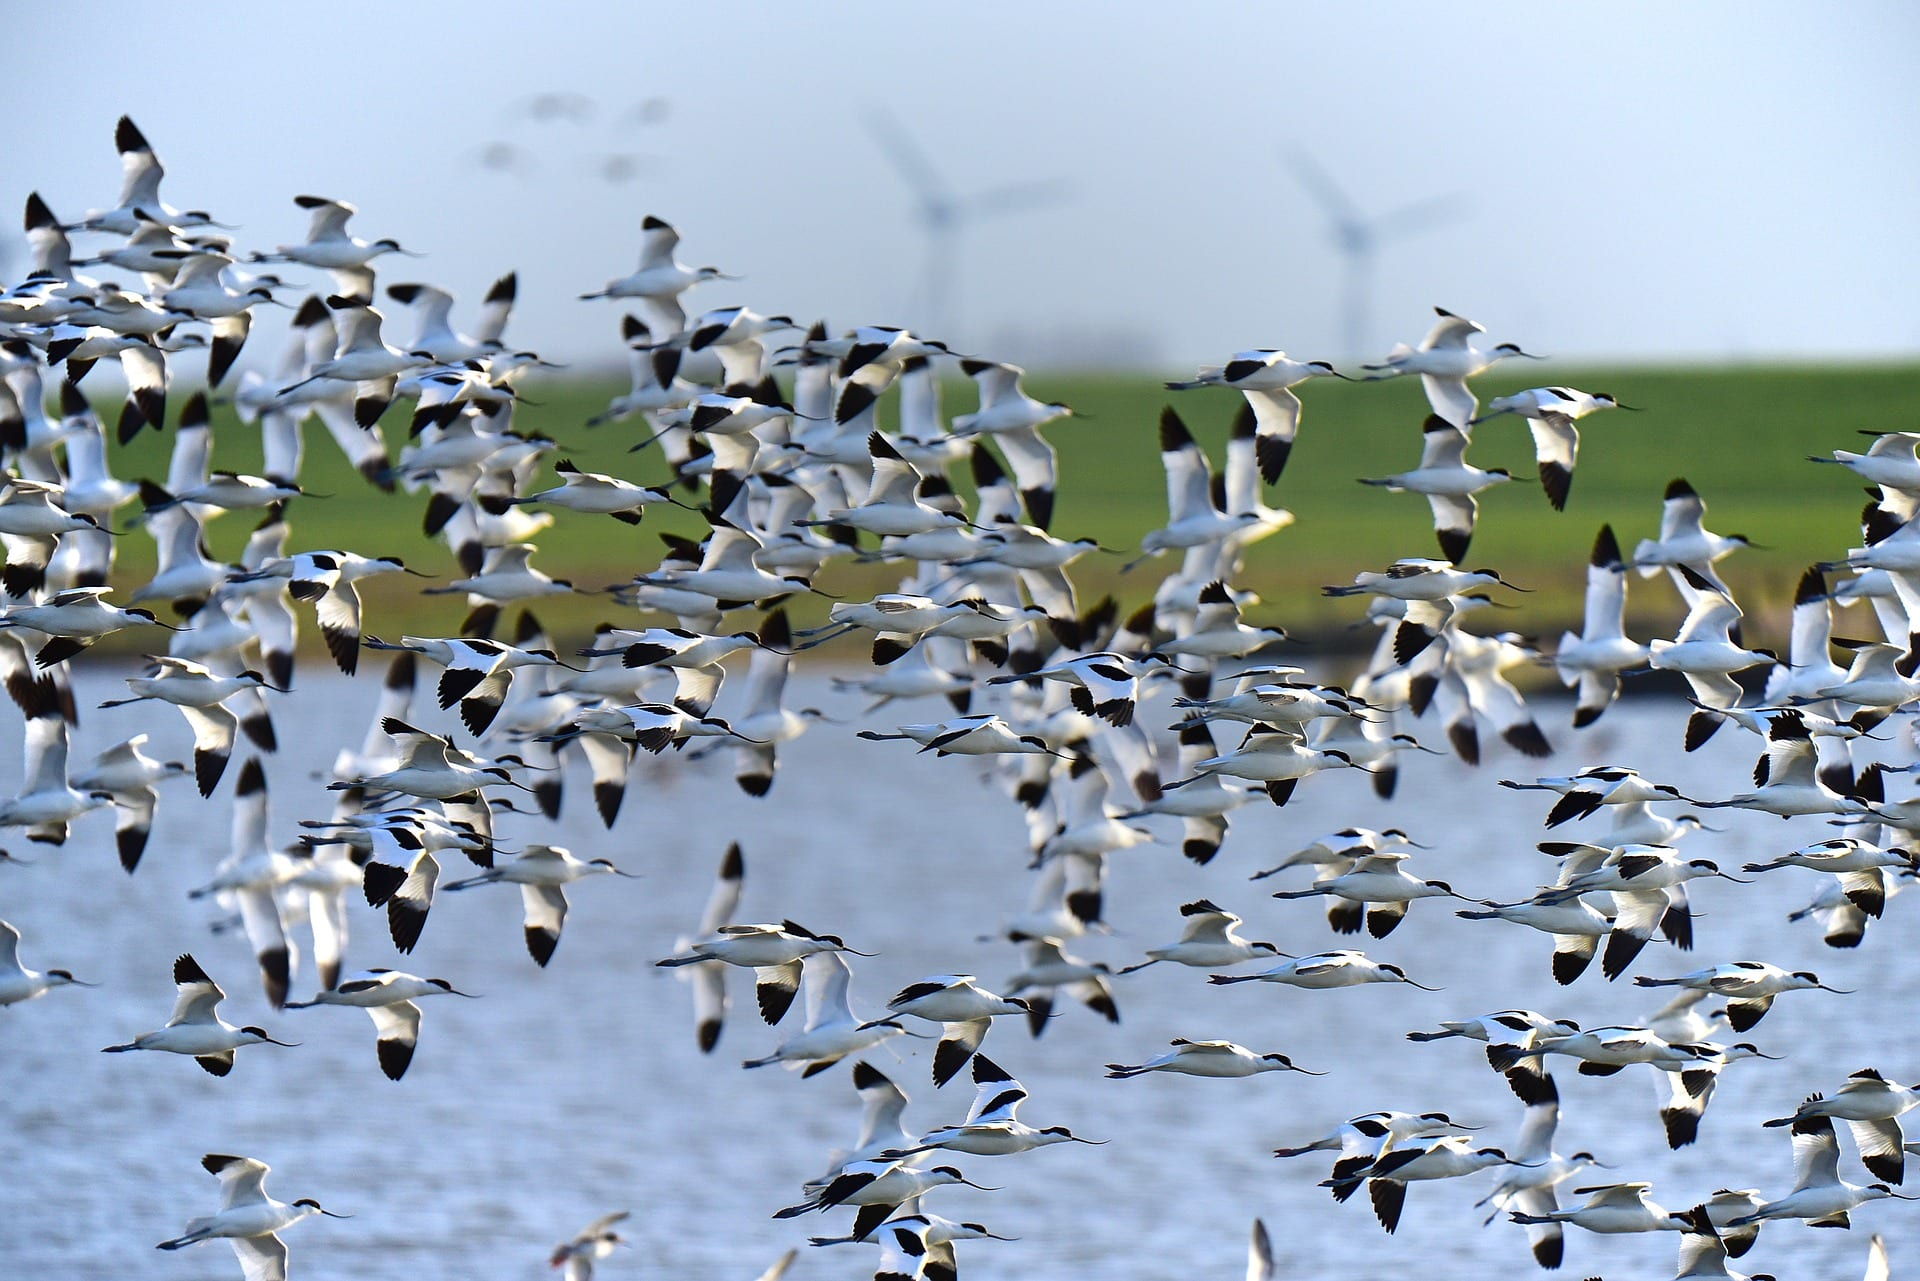 https://pixabay.com/en/avocet-north-sea-bird-migration-1773758/